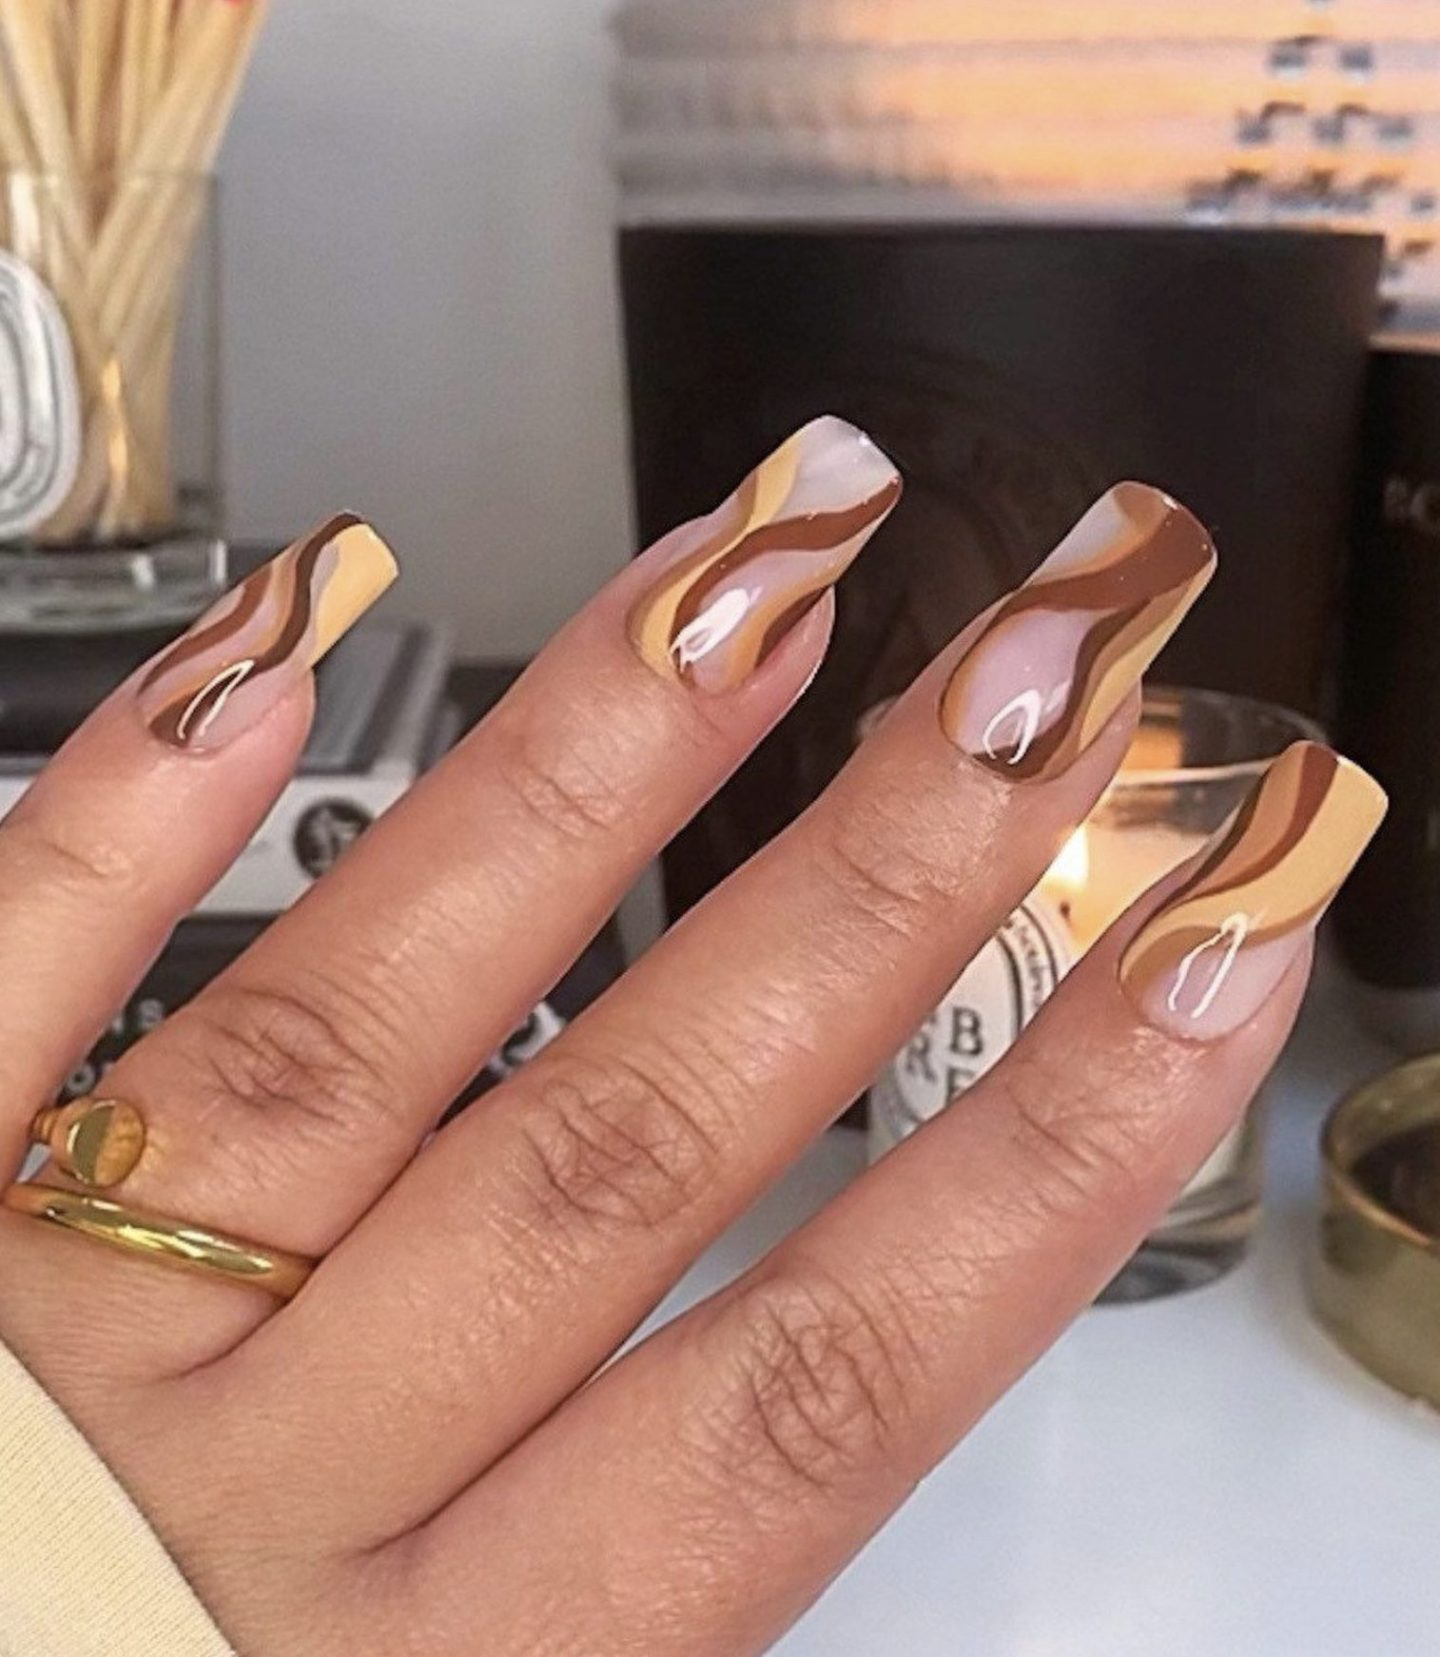 Brown abstract nails with swirls and lines